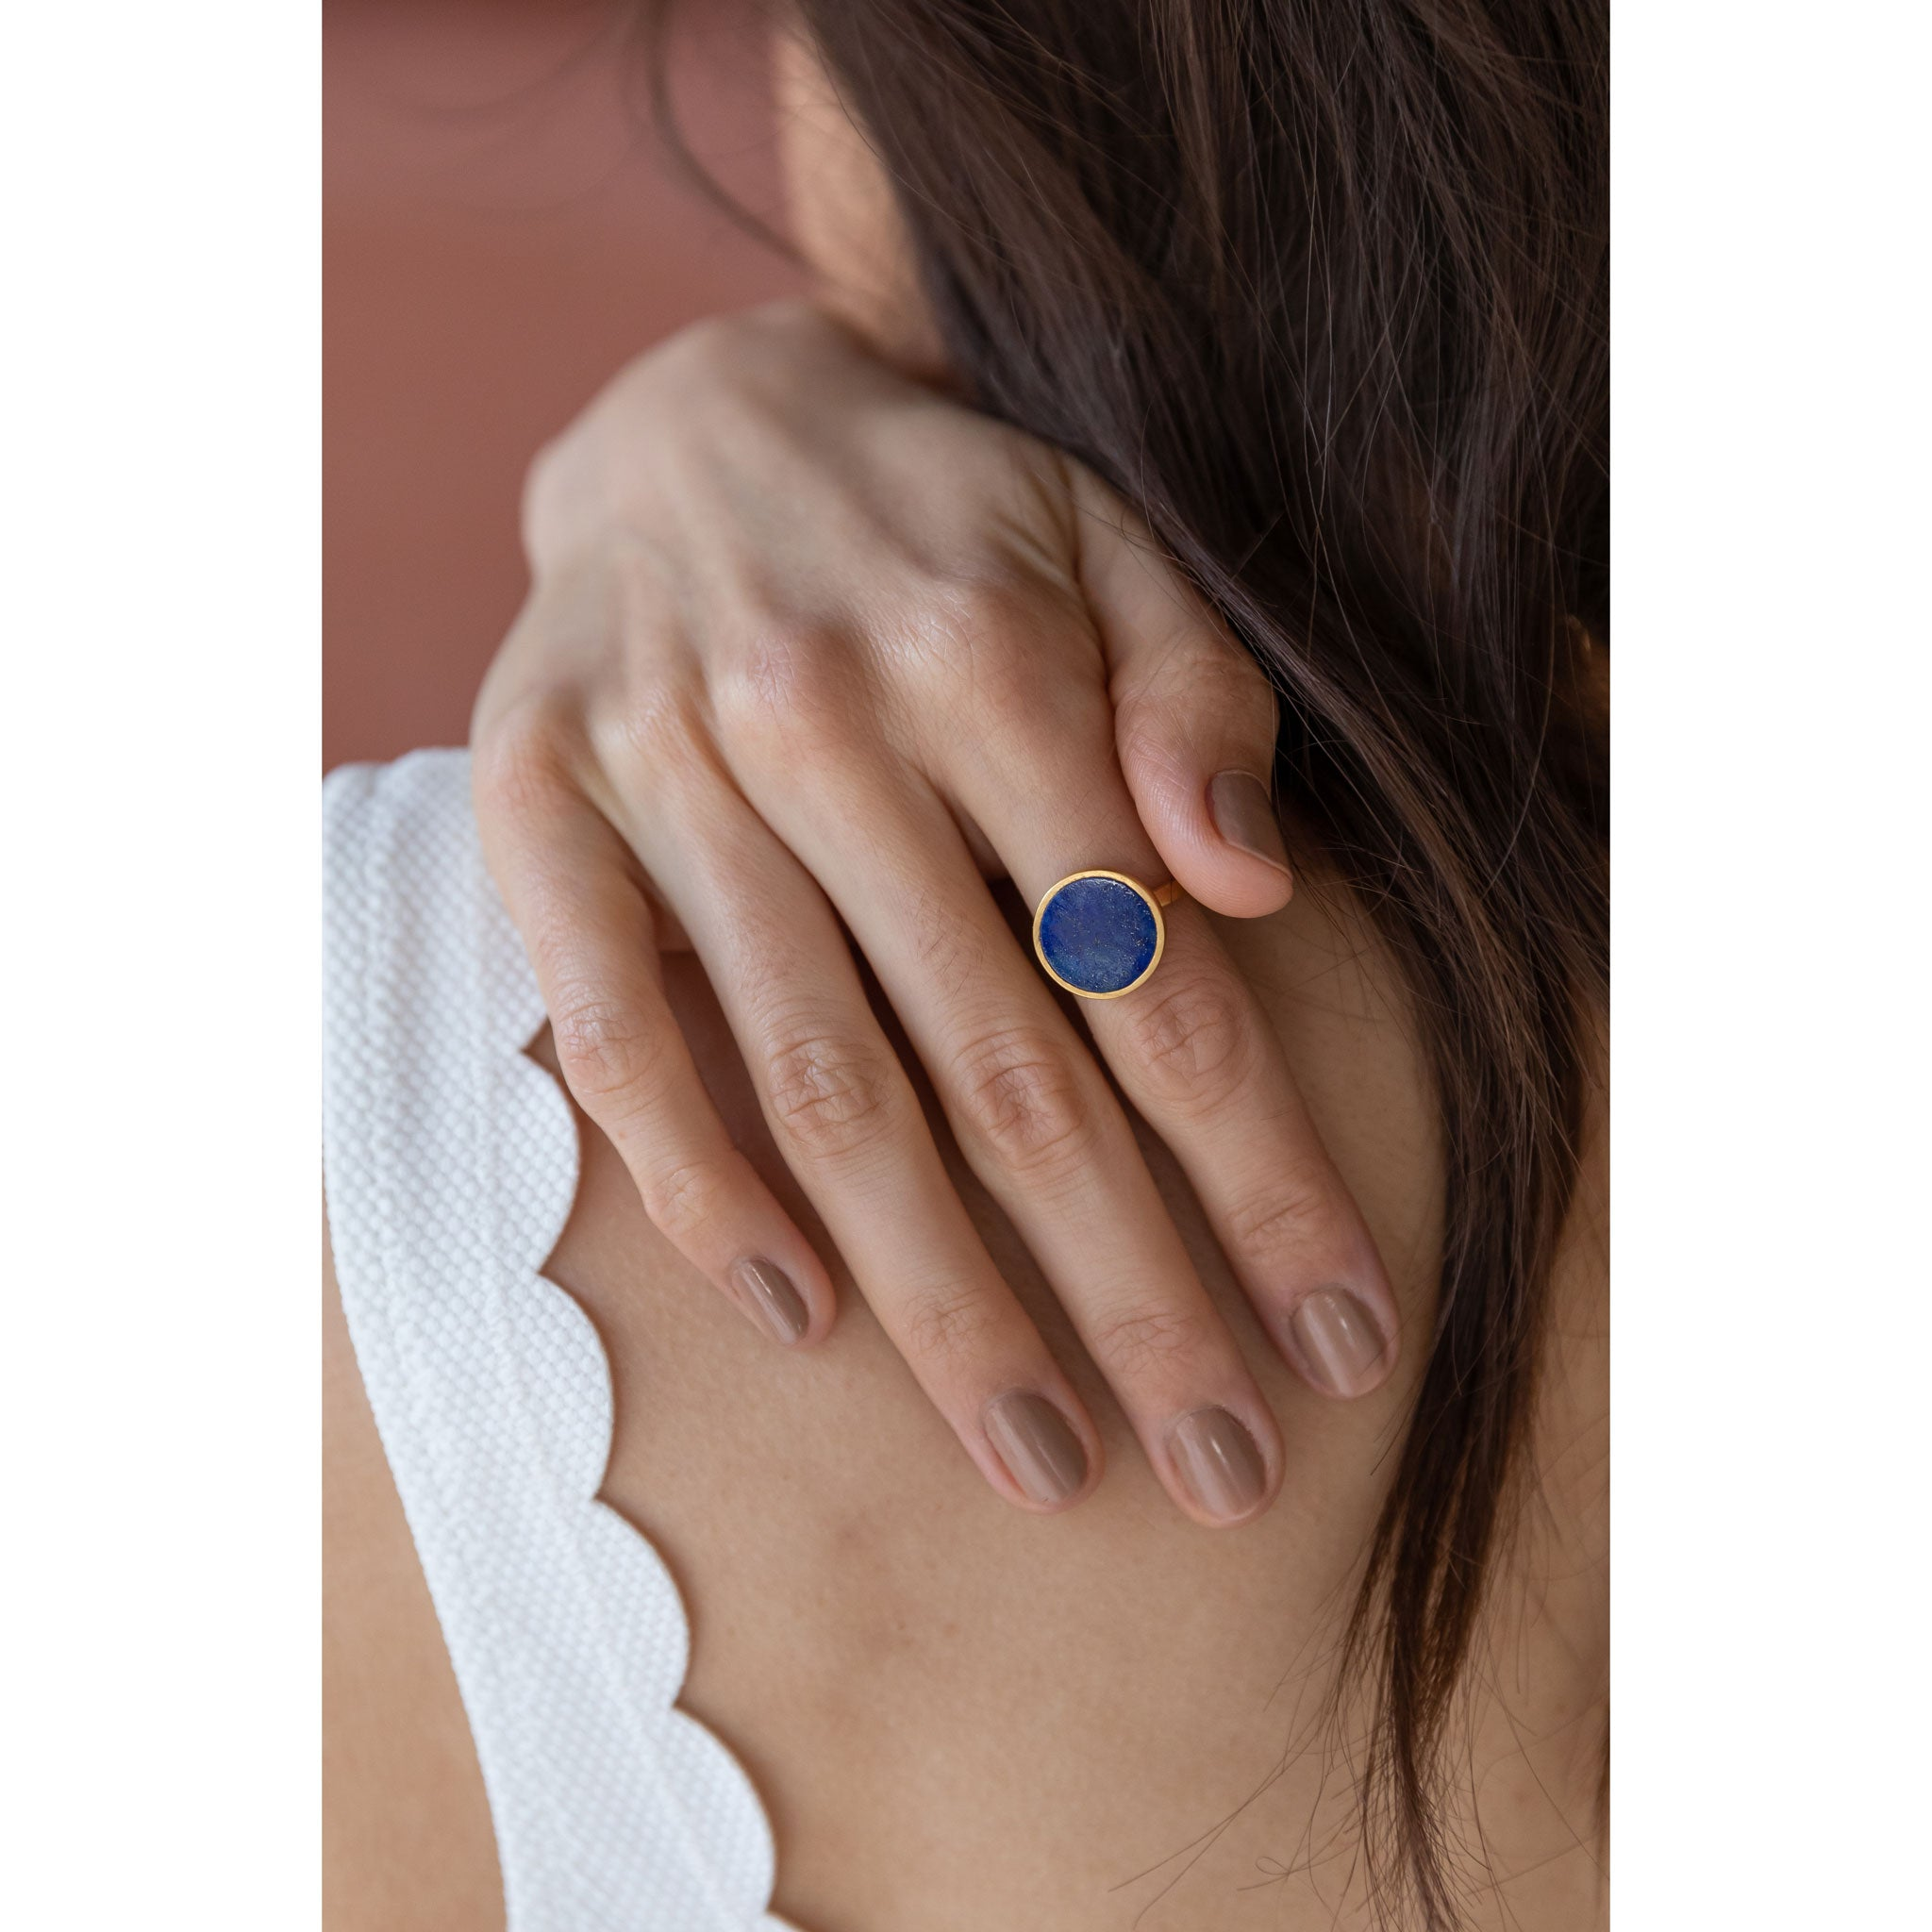 Wanderlust Life Ethically Handmade jewellery made in the UK. Minimalist gold and fine cord jewellery. solar ring, lapis lazuli